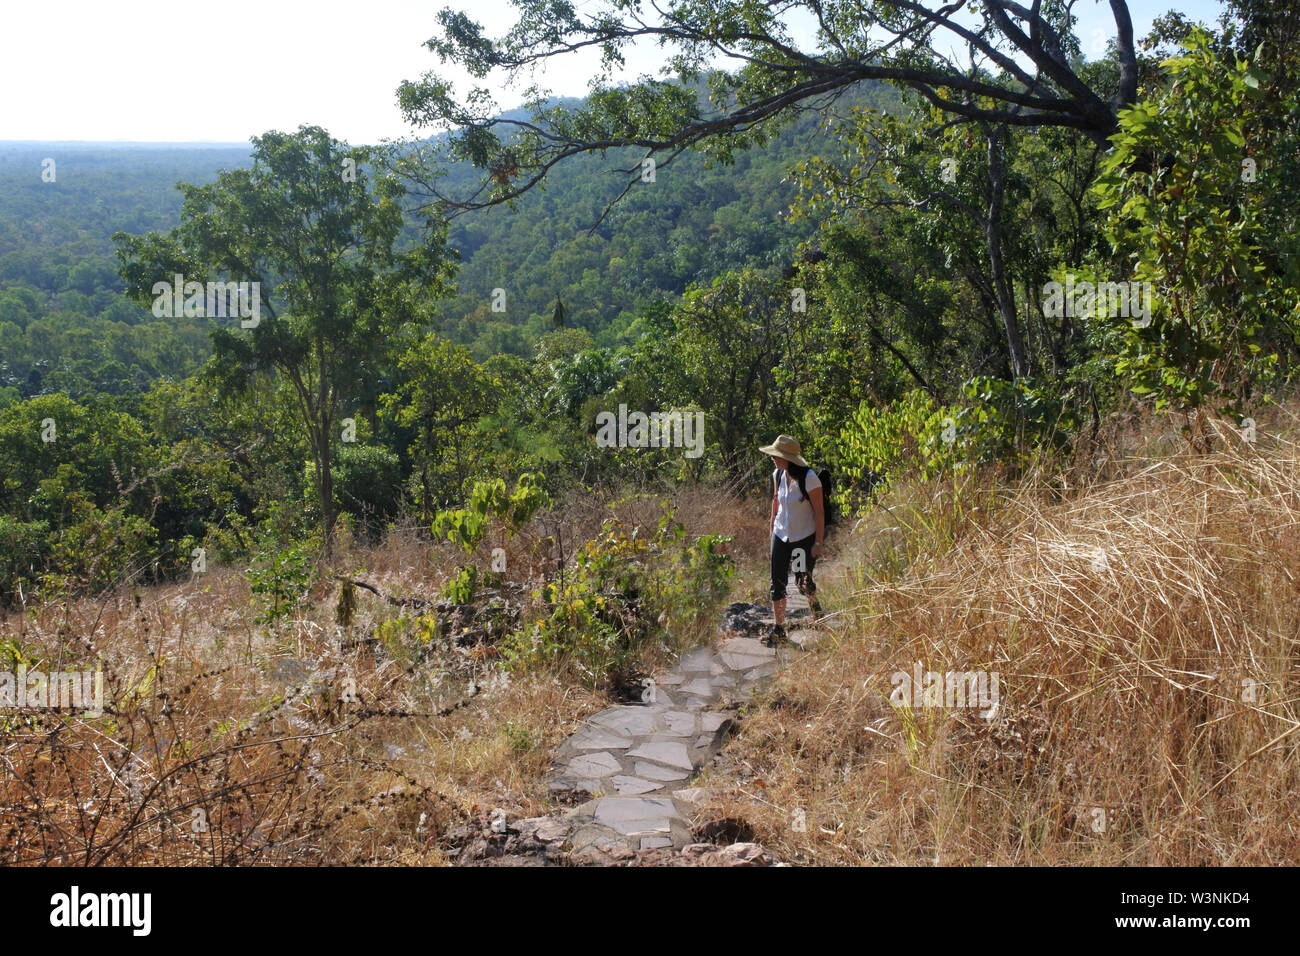 Australian adult woman hiking at Litchfield National Park in the  Northern Territory of Australia - Stock Image